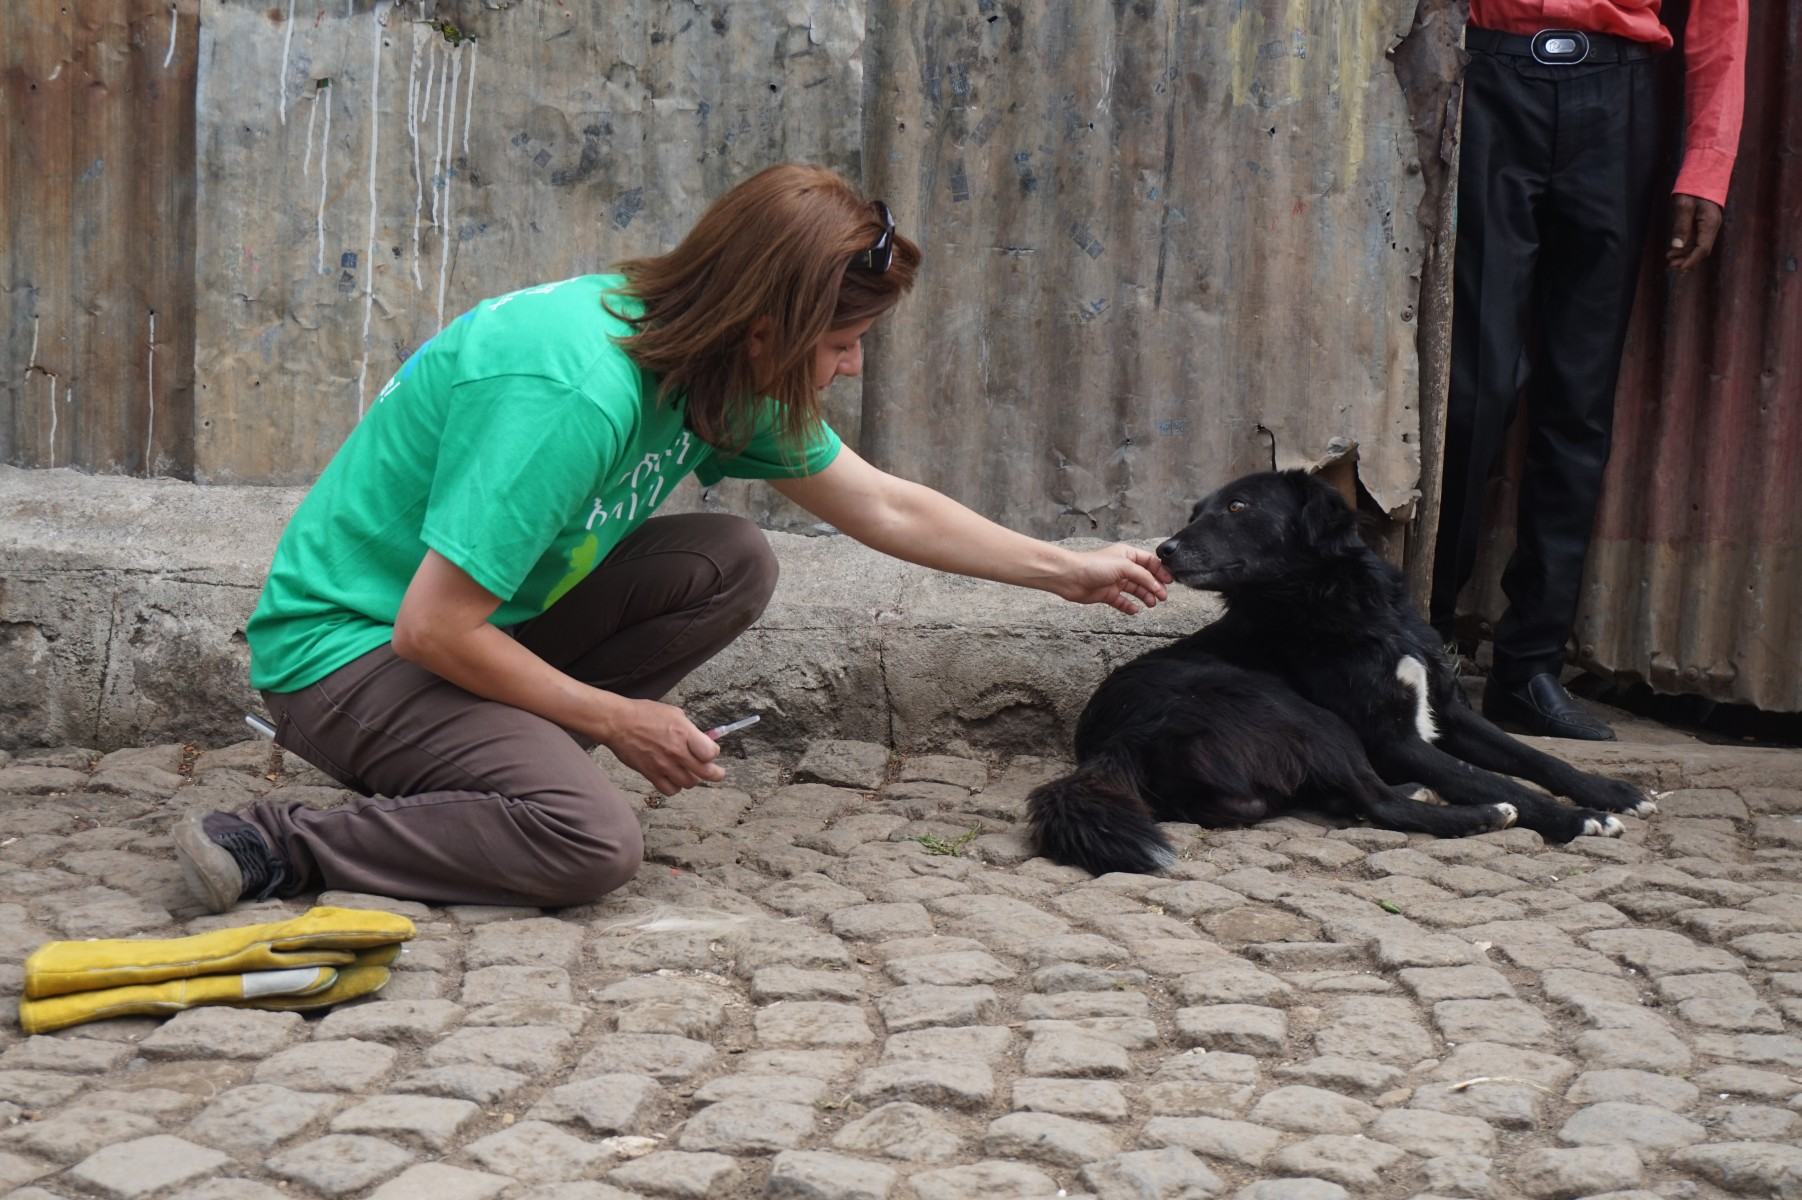 Dr. Maria Belu of the College of Veterinary Medicine prepares to give a dog a rabies vaccine in Addis Ababa, Ethiopia. Rabies prevention is a One Health priority.